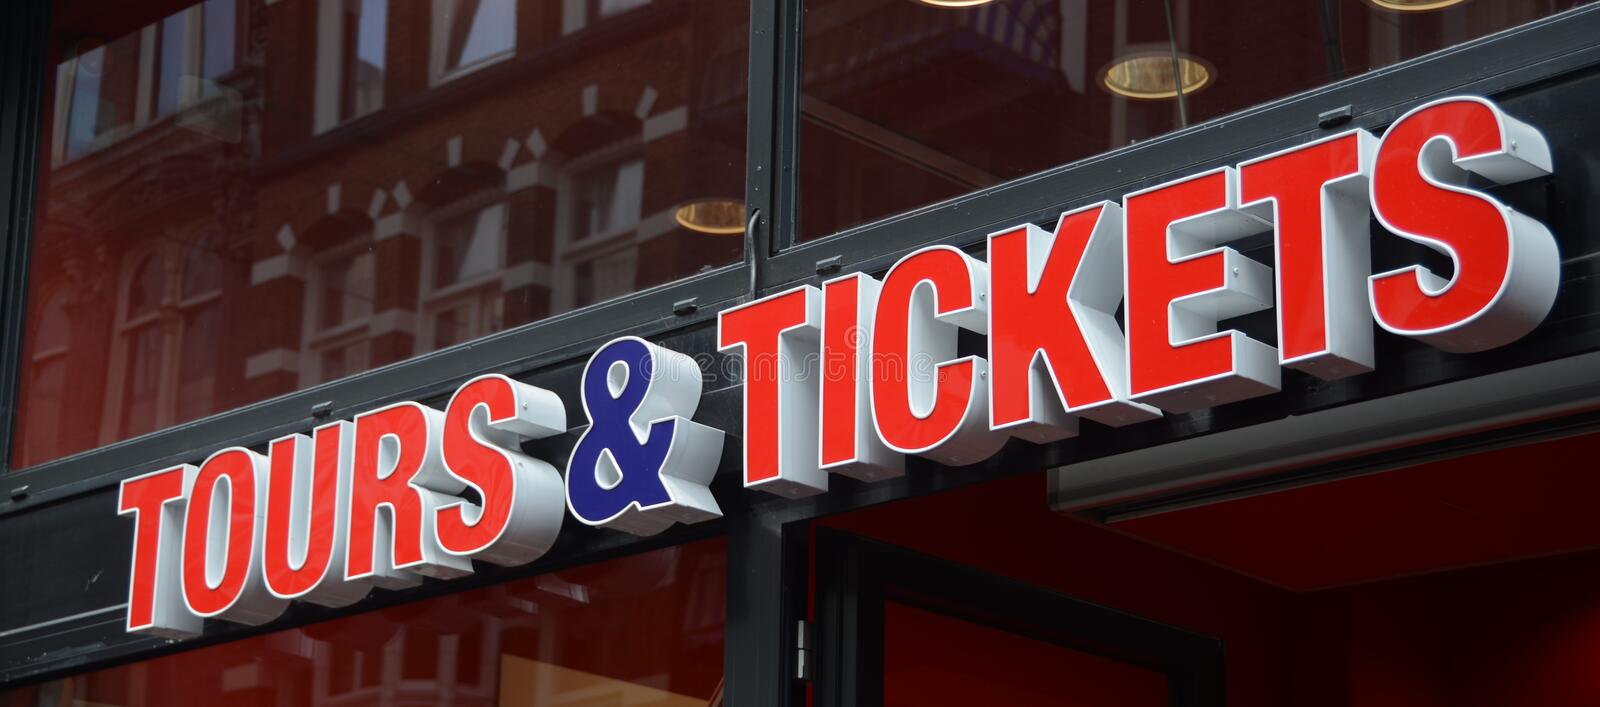 Tours and Tickets. Sign with word in red saying Tours & Tickets stock photos